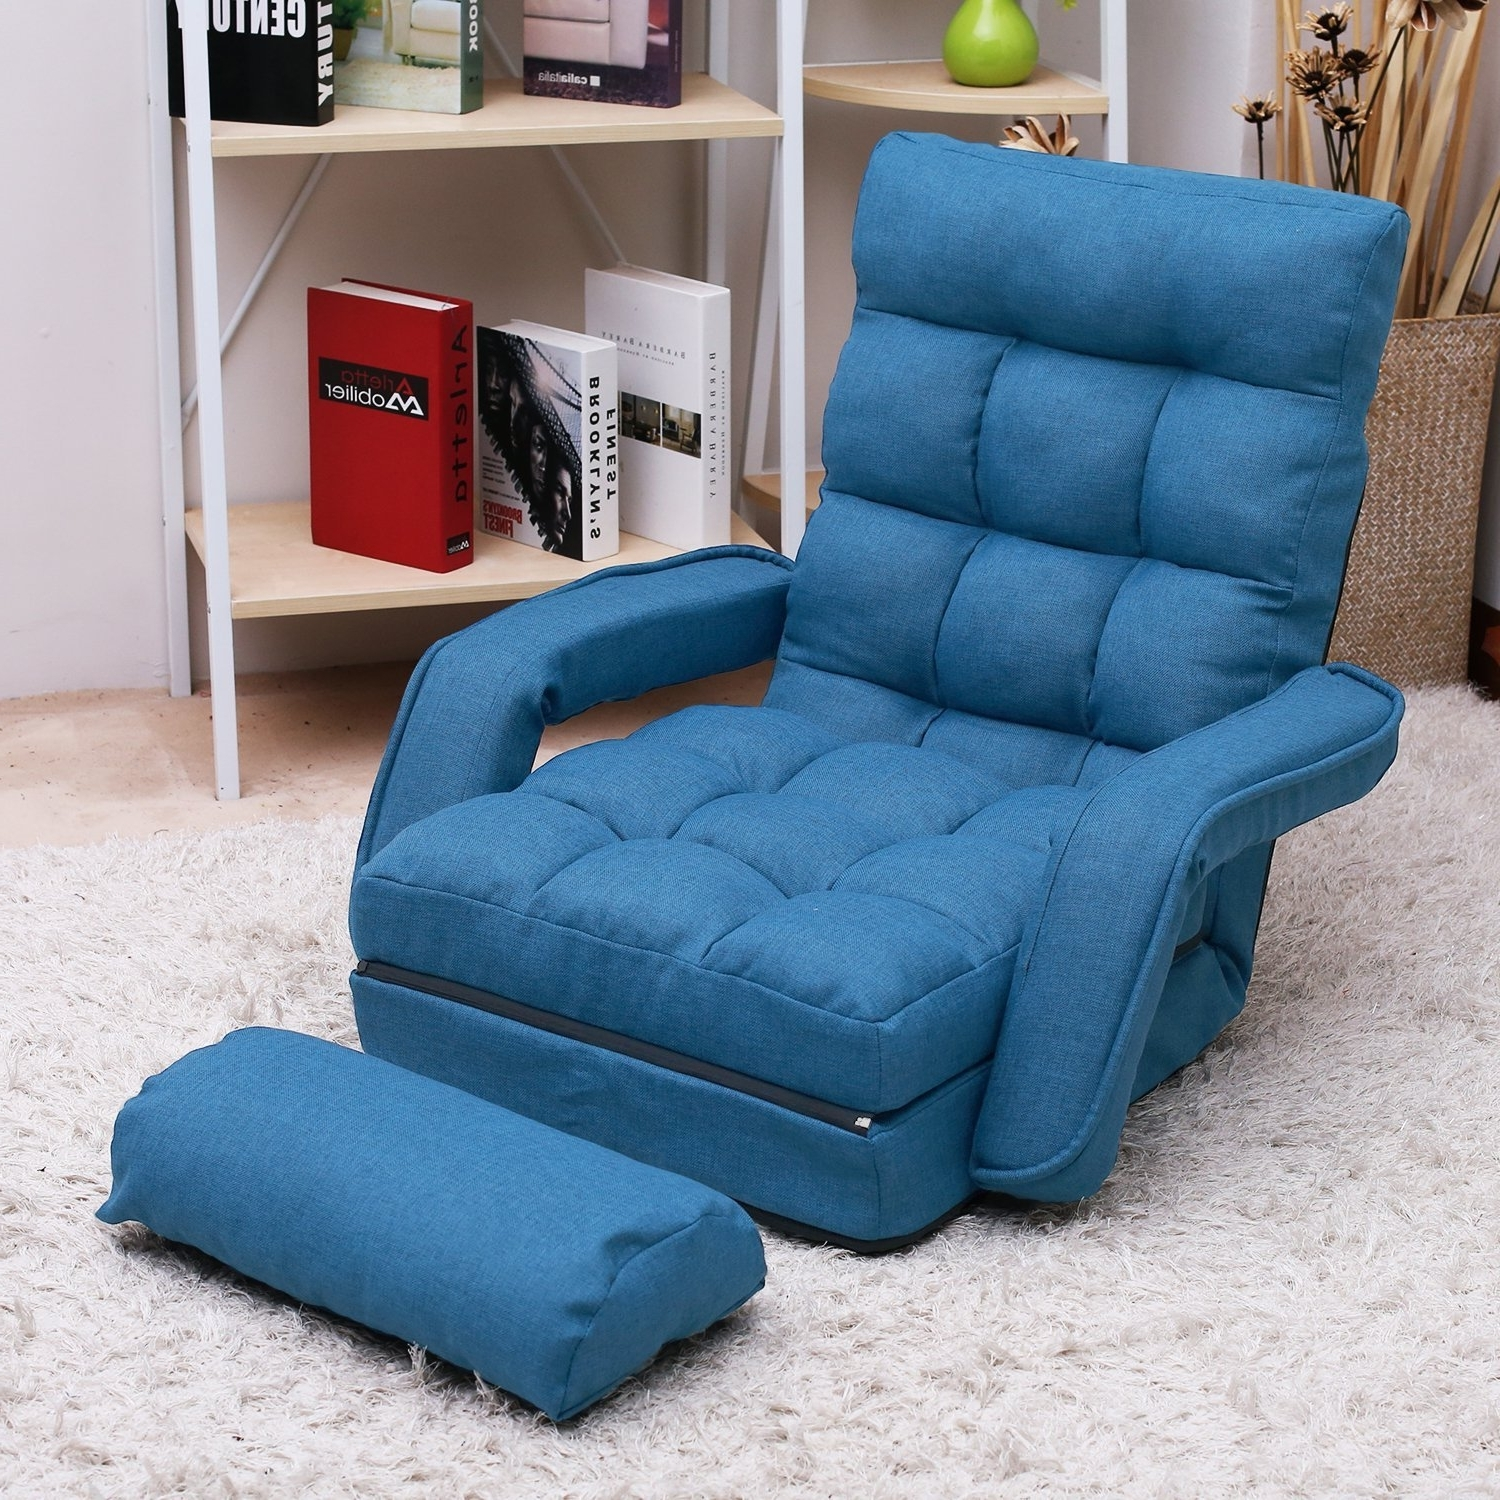 Amazon: Merax Folding Lazy Sofa Floor Chair Sofa Lounger Bed Pertaining To Most Recent Lazy Sofa Chairs (View 3 of 15)